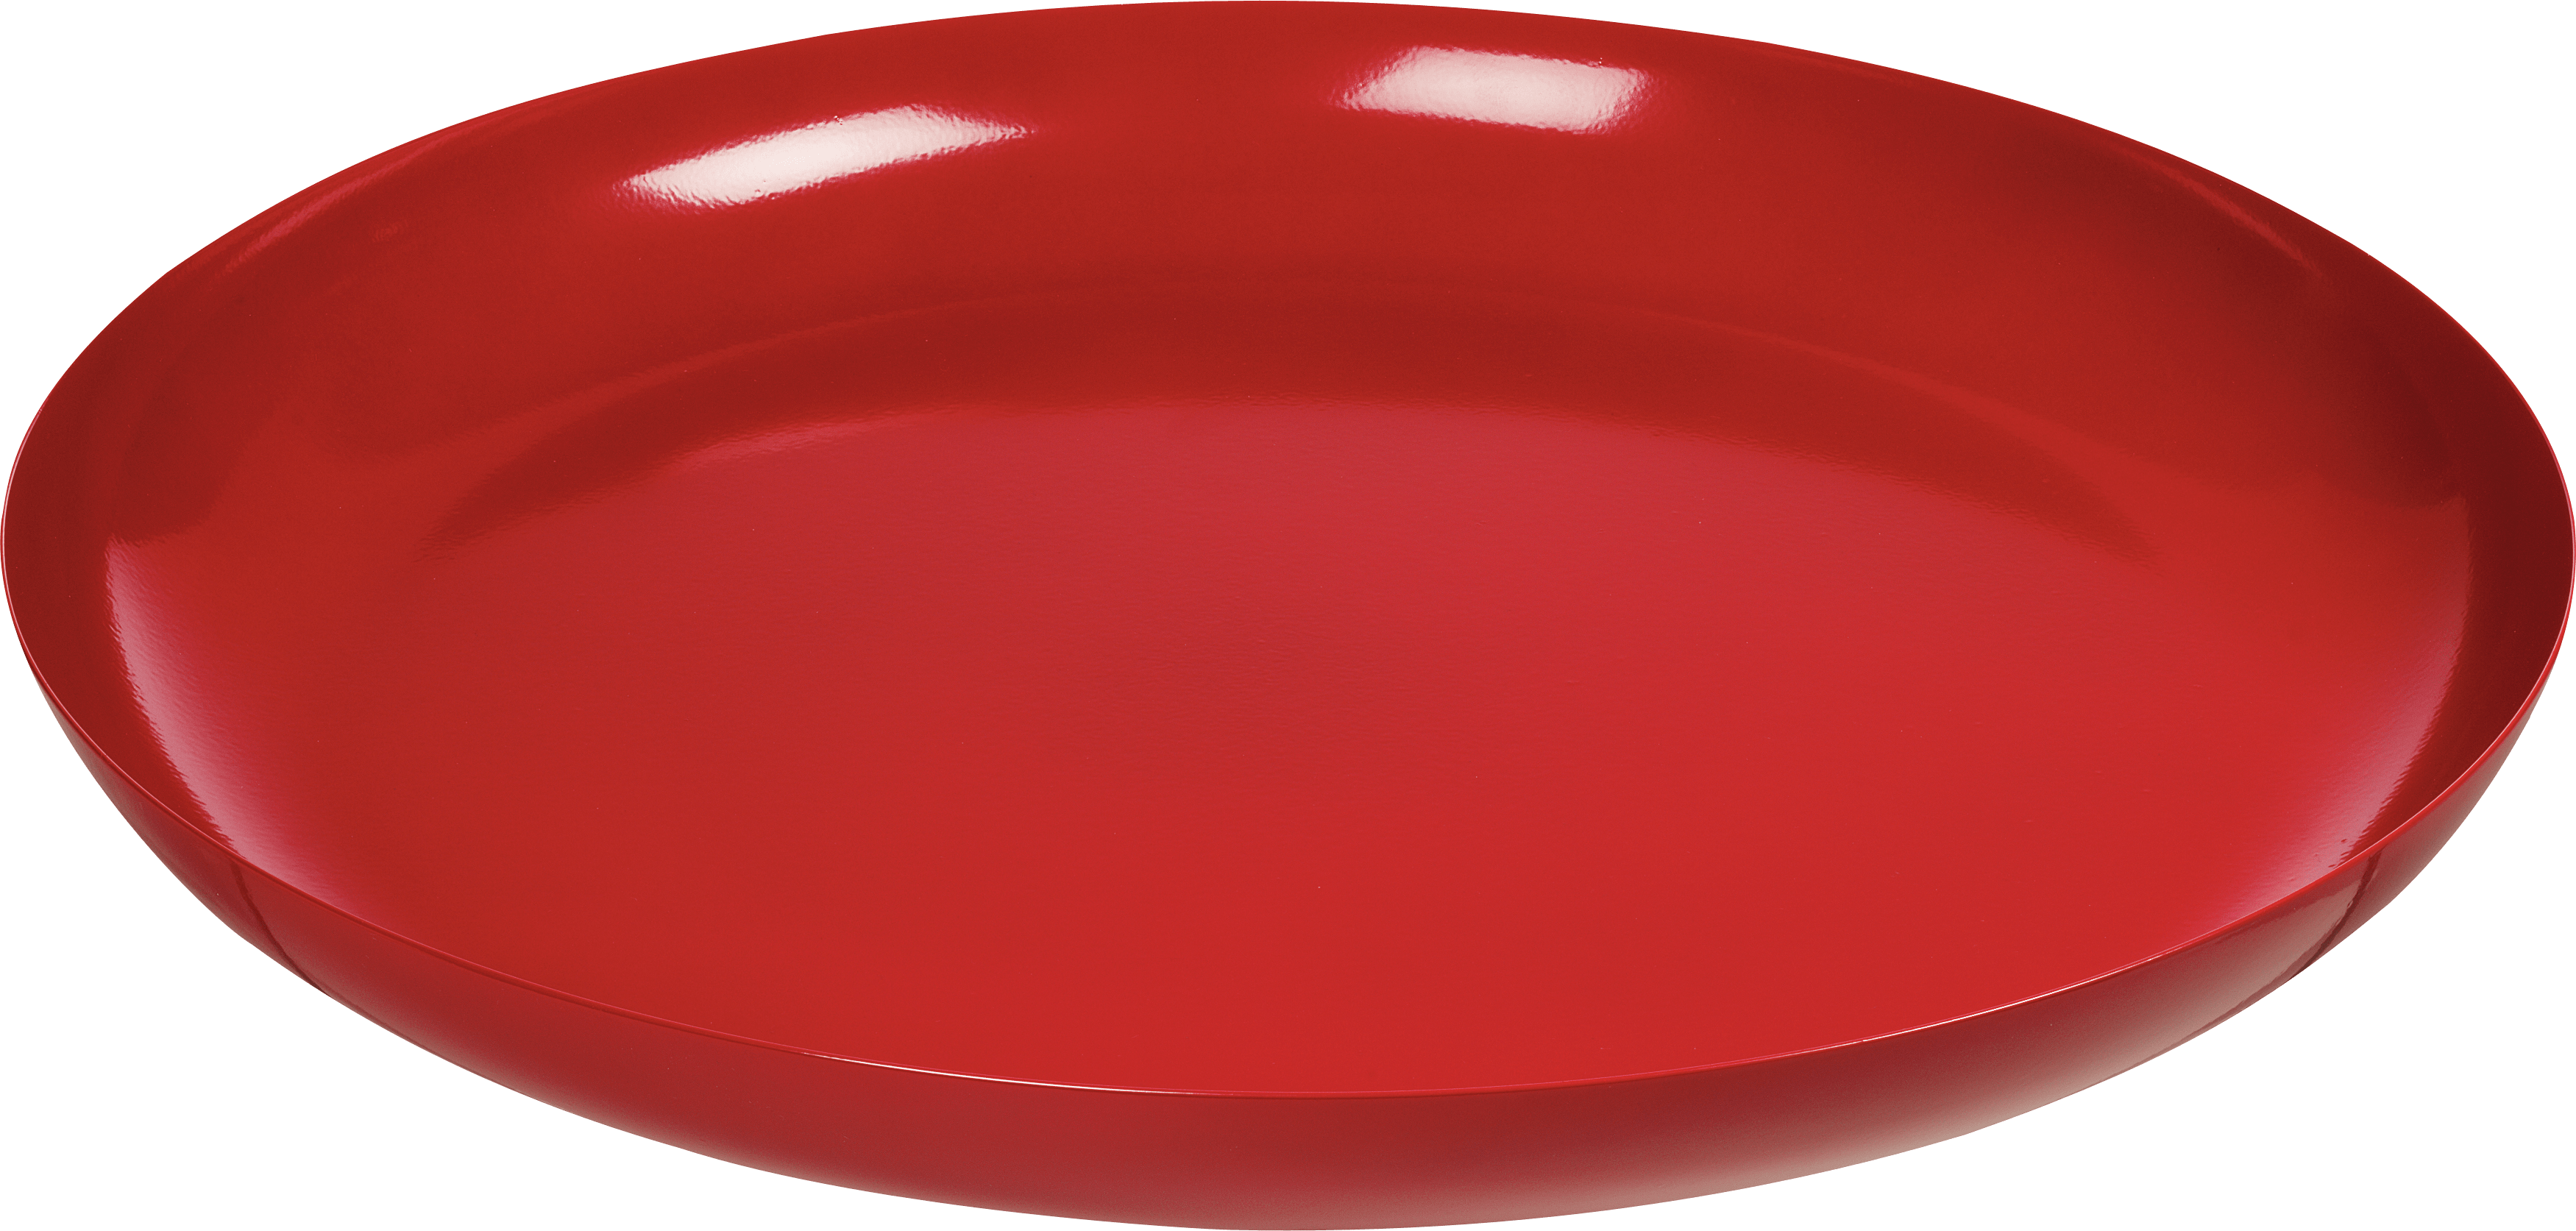 Hdpng - Plate, Transparent background PNG HD thumbnail